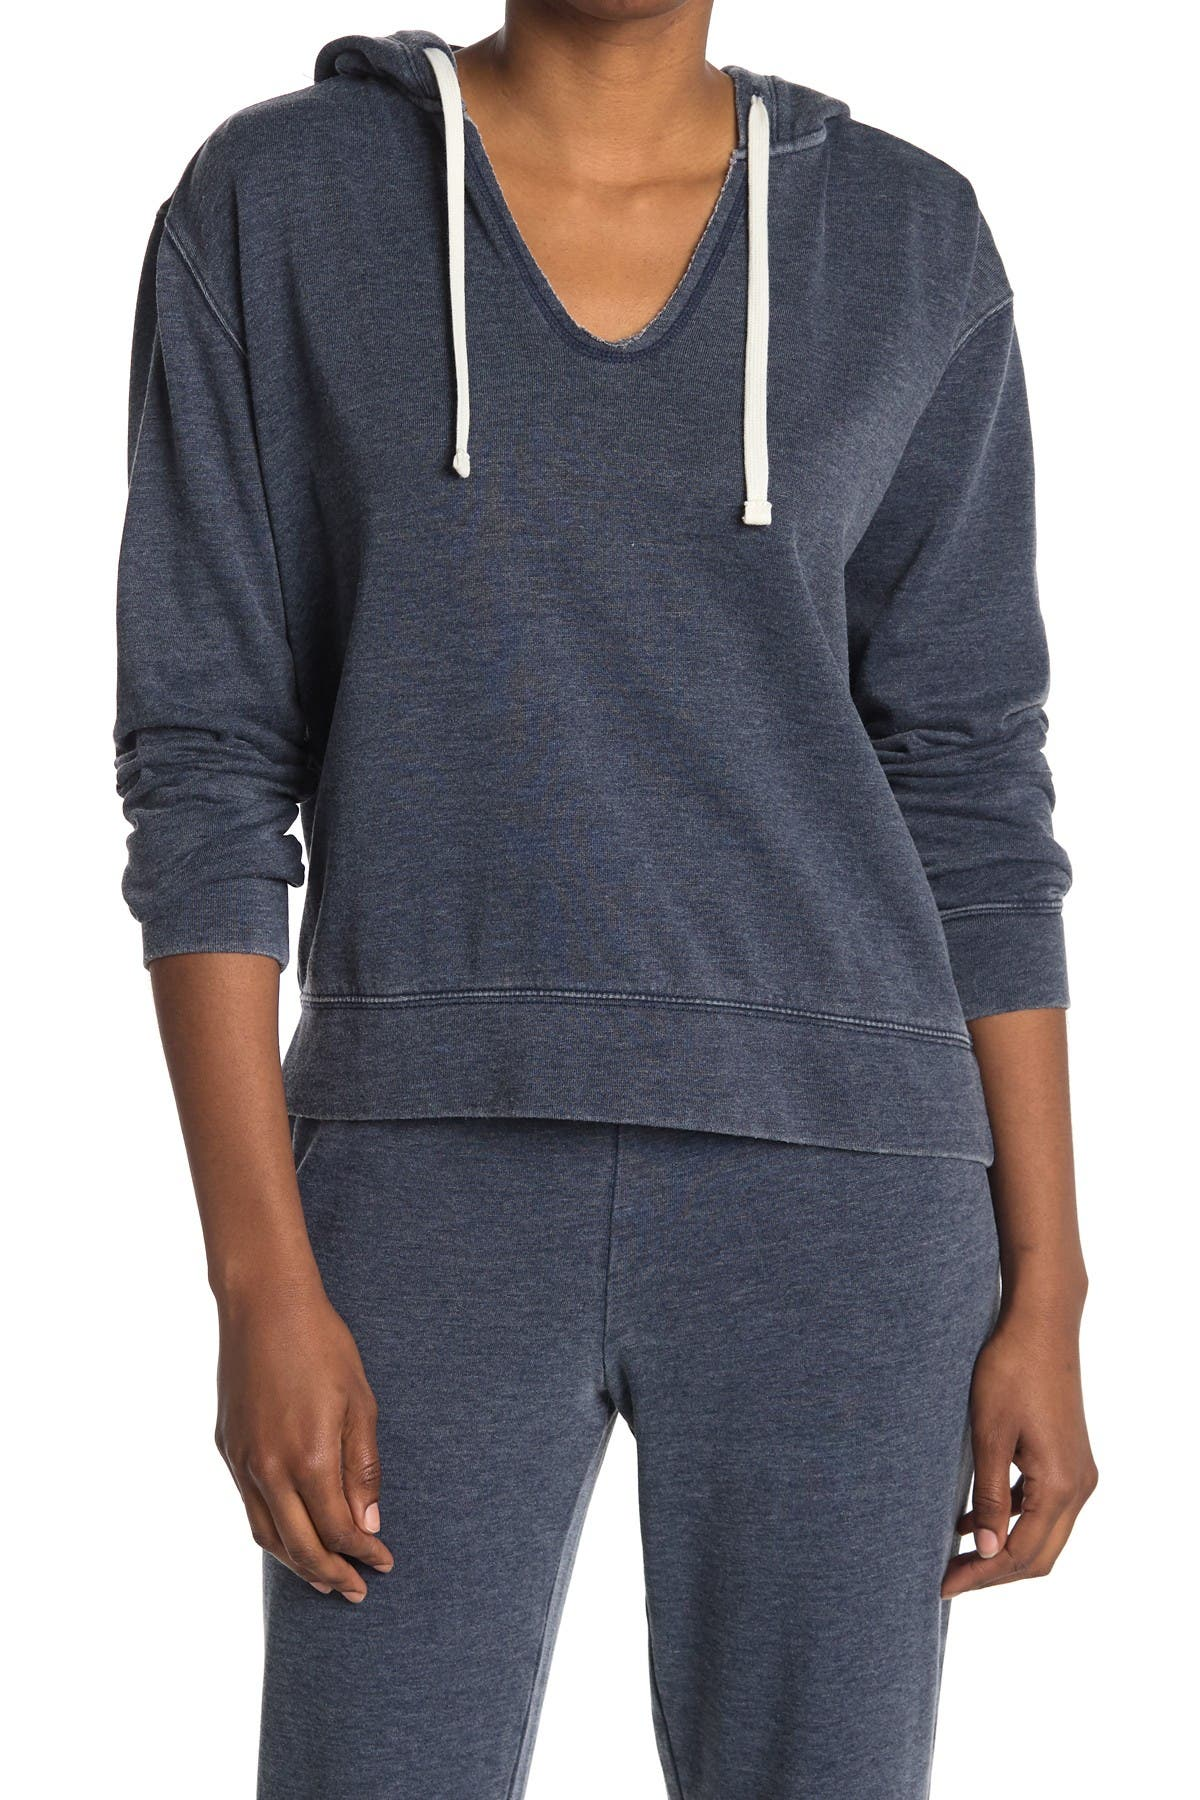 Image of Splendid Hooded Knit Pullover